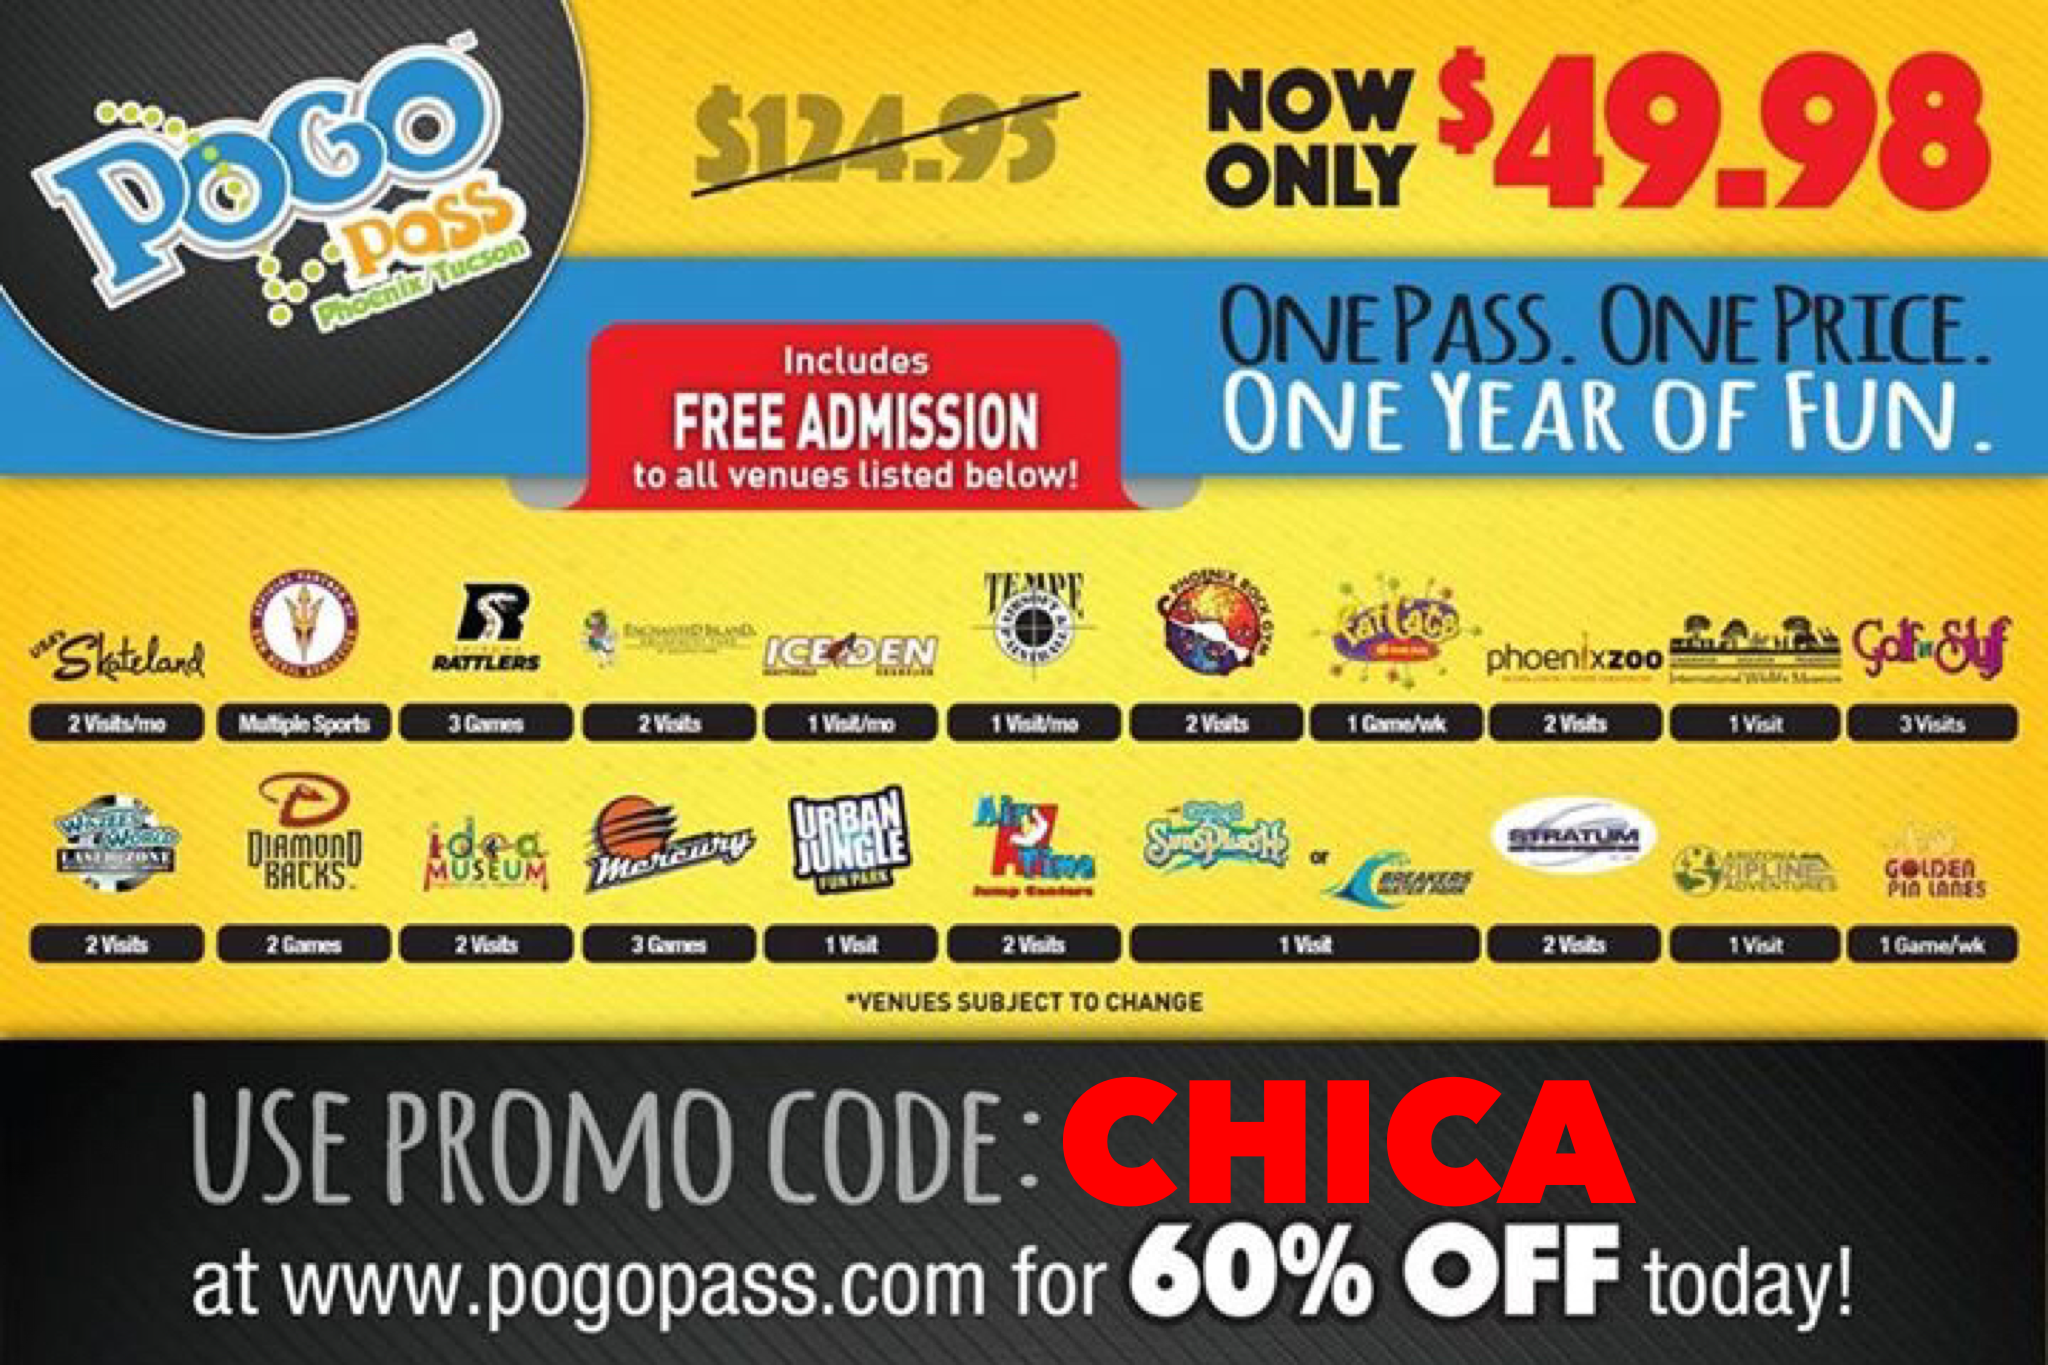 pogo pass coupon code